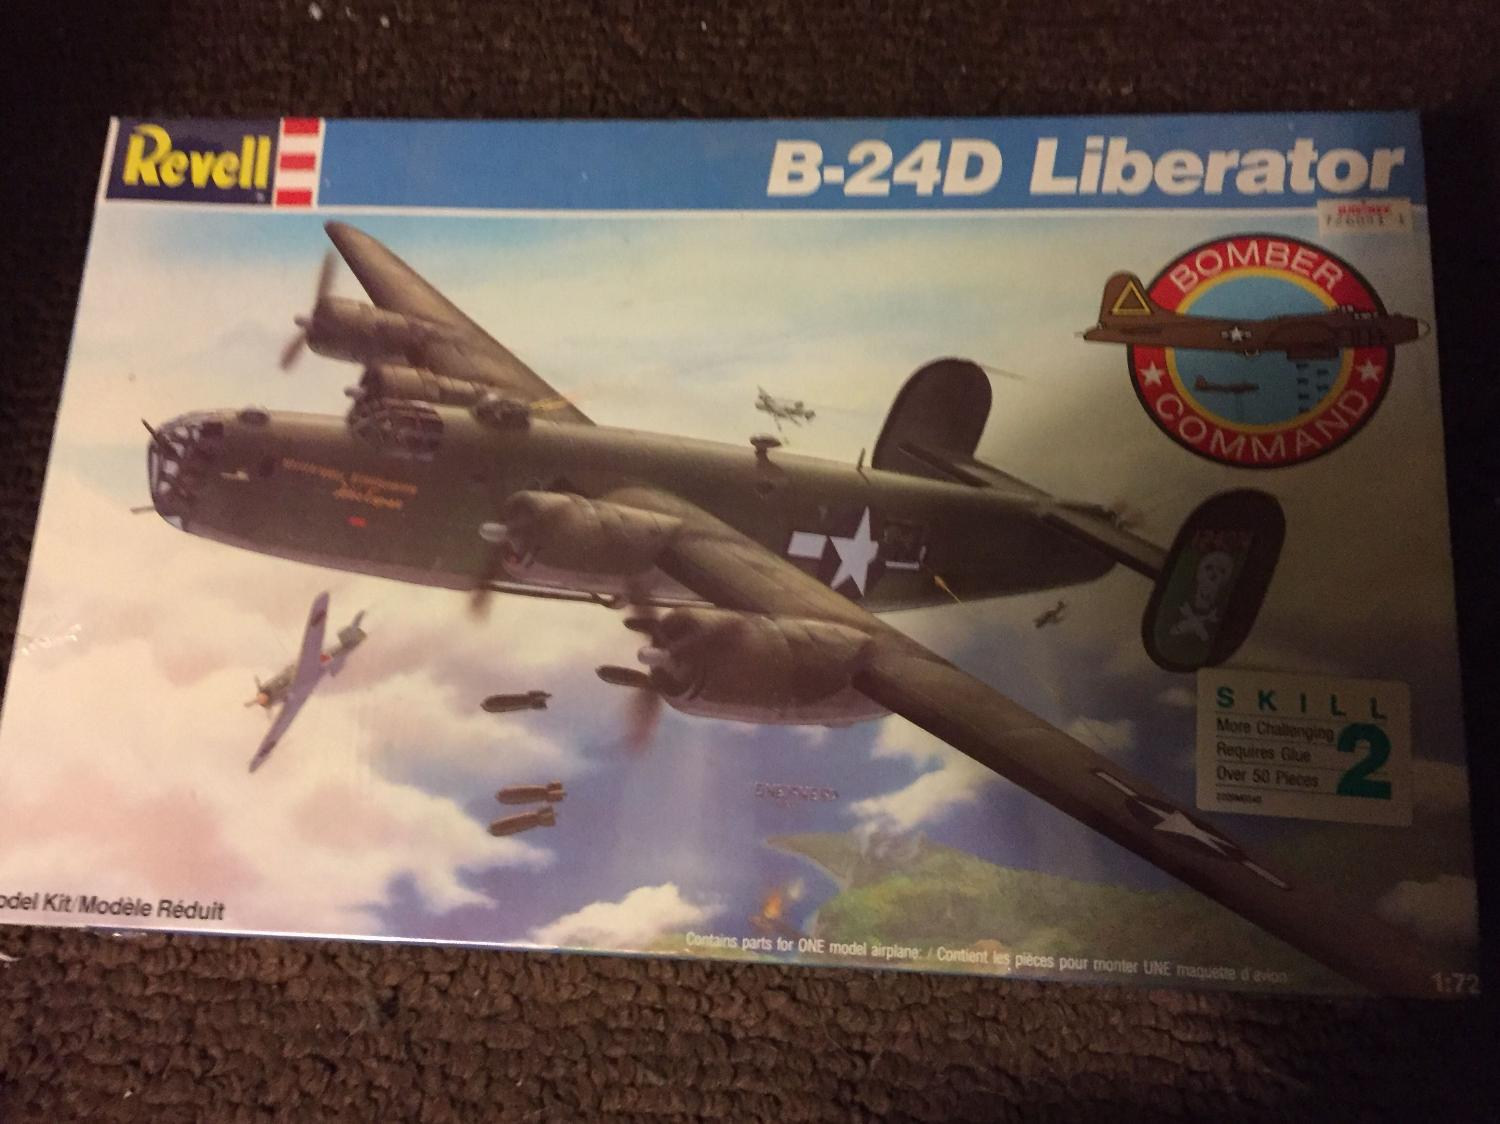 B 24 Model For Sale {Canarias Deportiva}